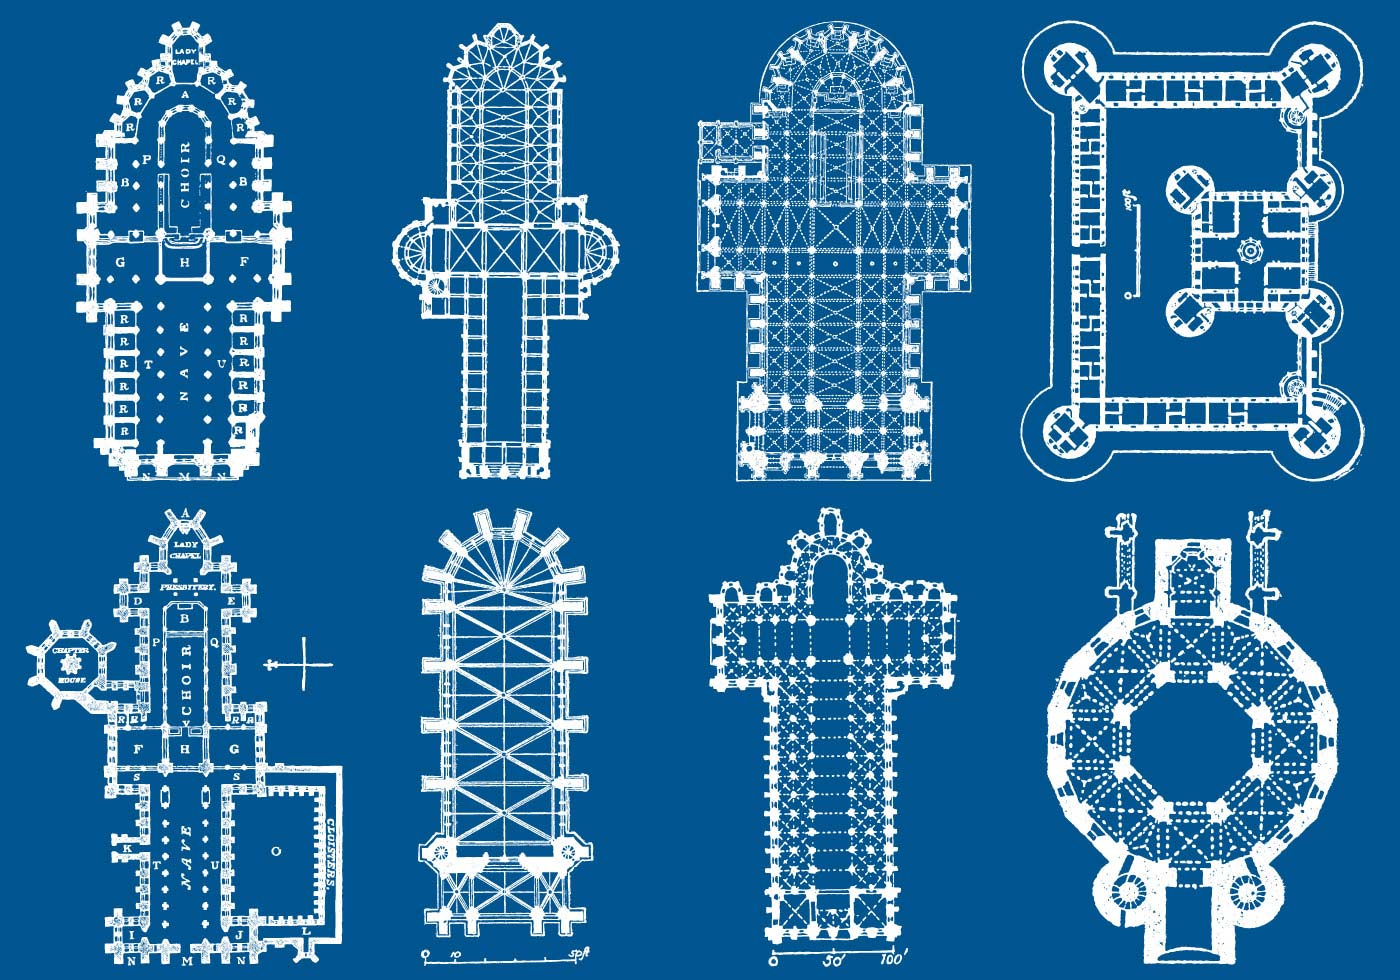 cathedral vector floor plans download free vector art floor plan of pisa cathedral images frompo